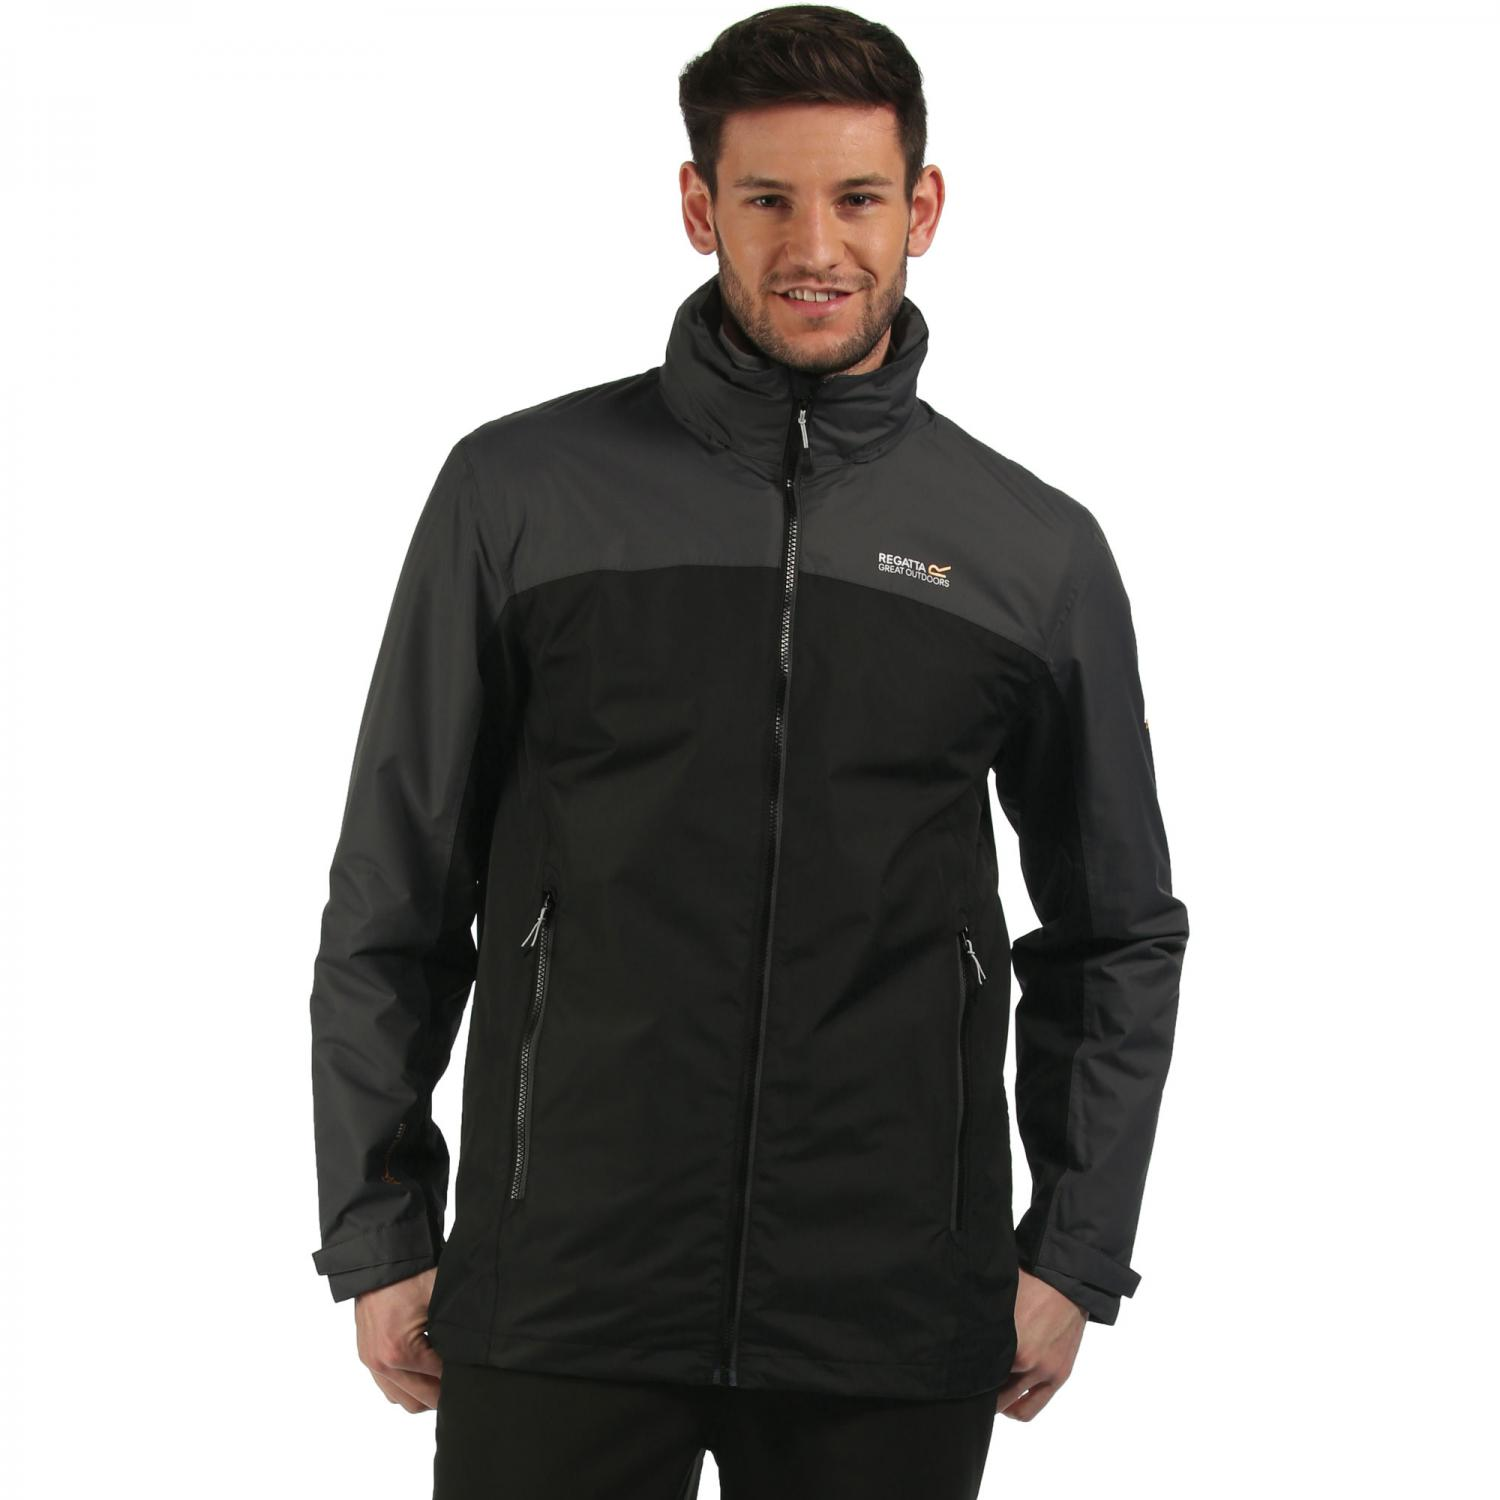 Backmoor 3 in 1 Jacket Black Seal Grey